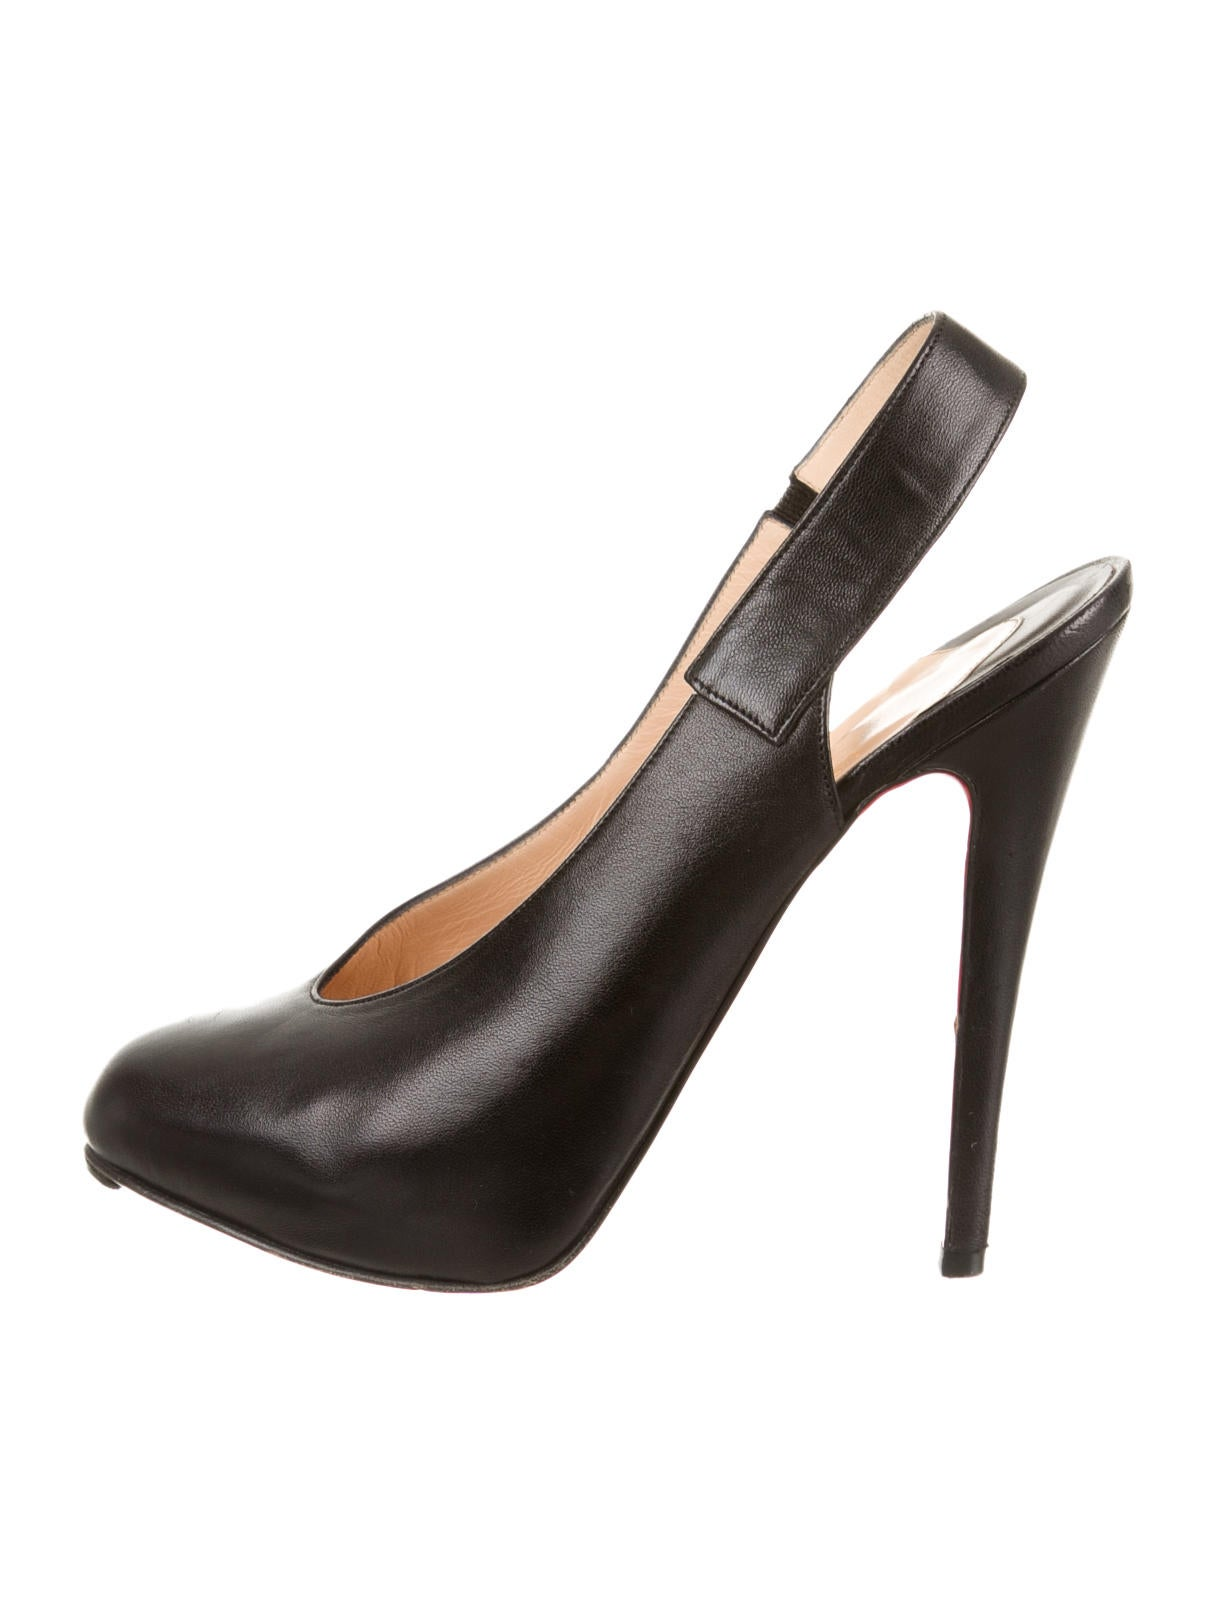 fake replica shoes - Artesur ? christian louboutin round-toe slingback pumps Black leather